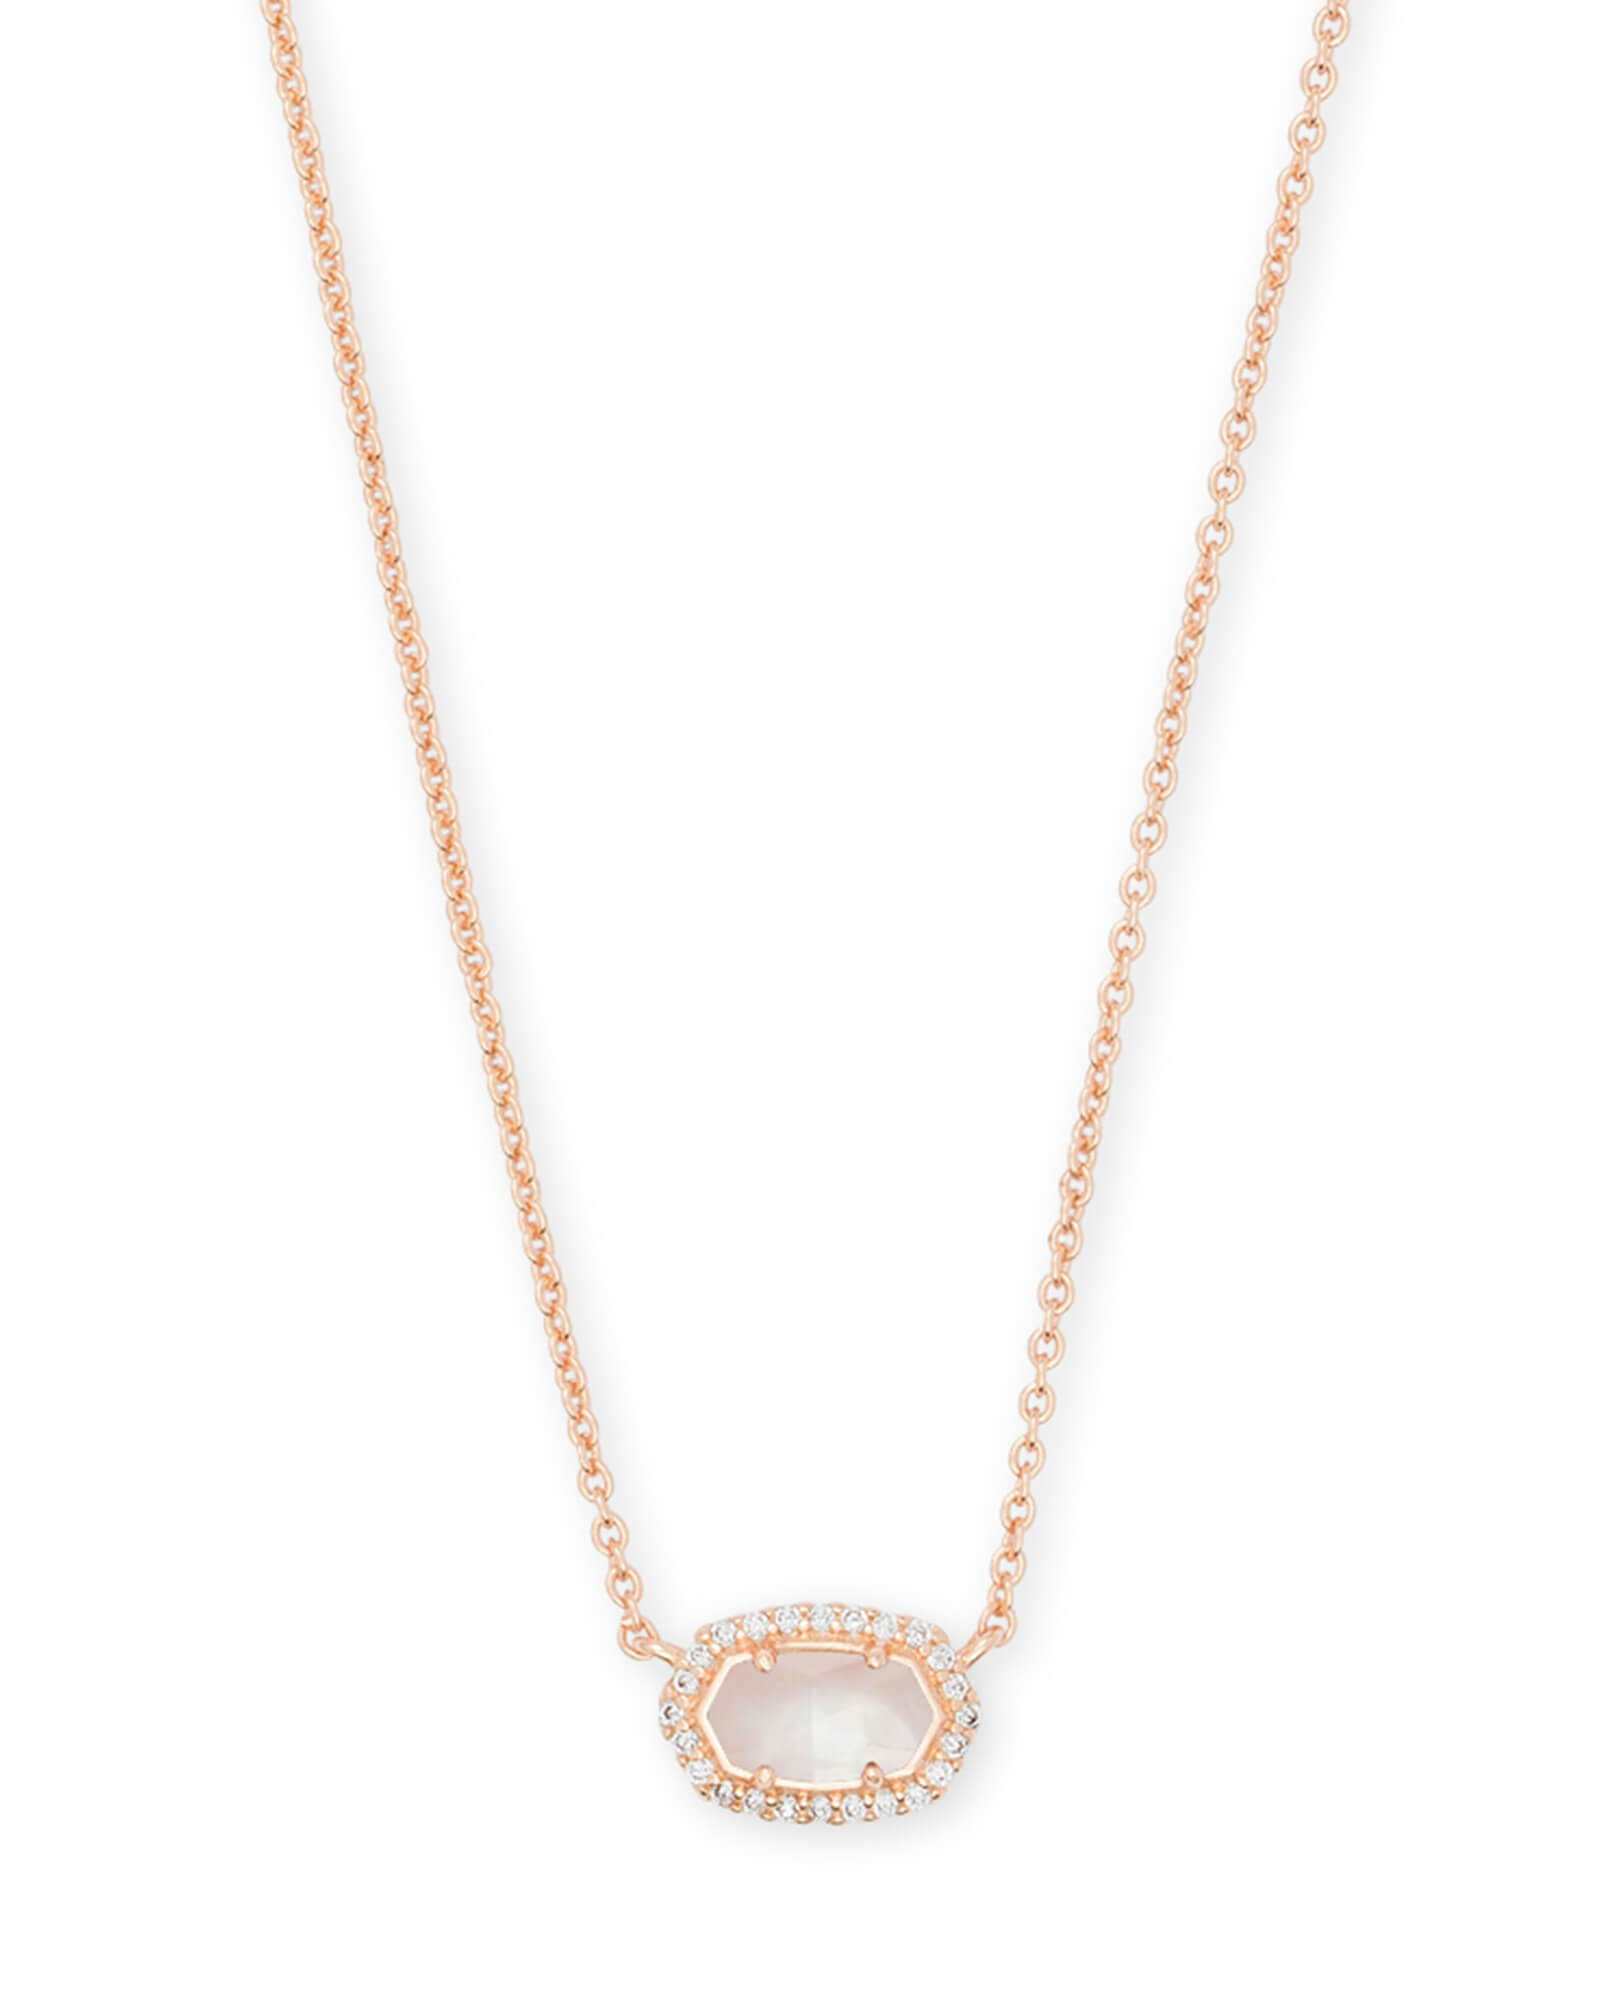 Chelsea Rose Gold Pendant Necklace In Ivory Pearl by Kendra Scott